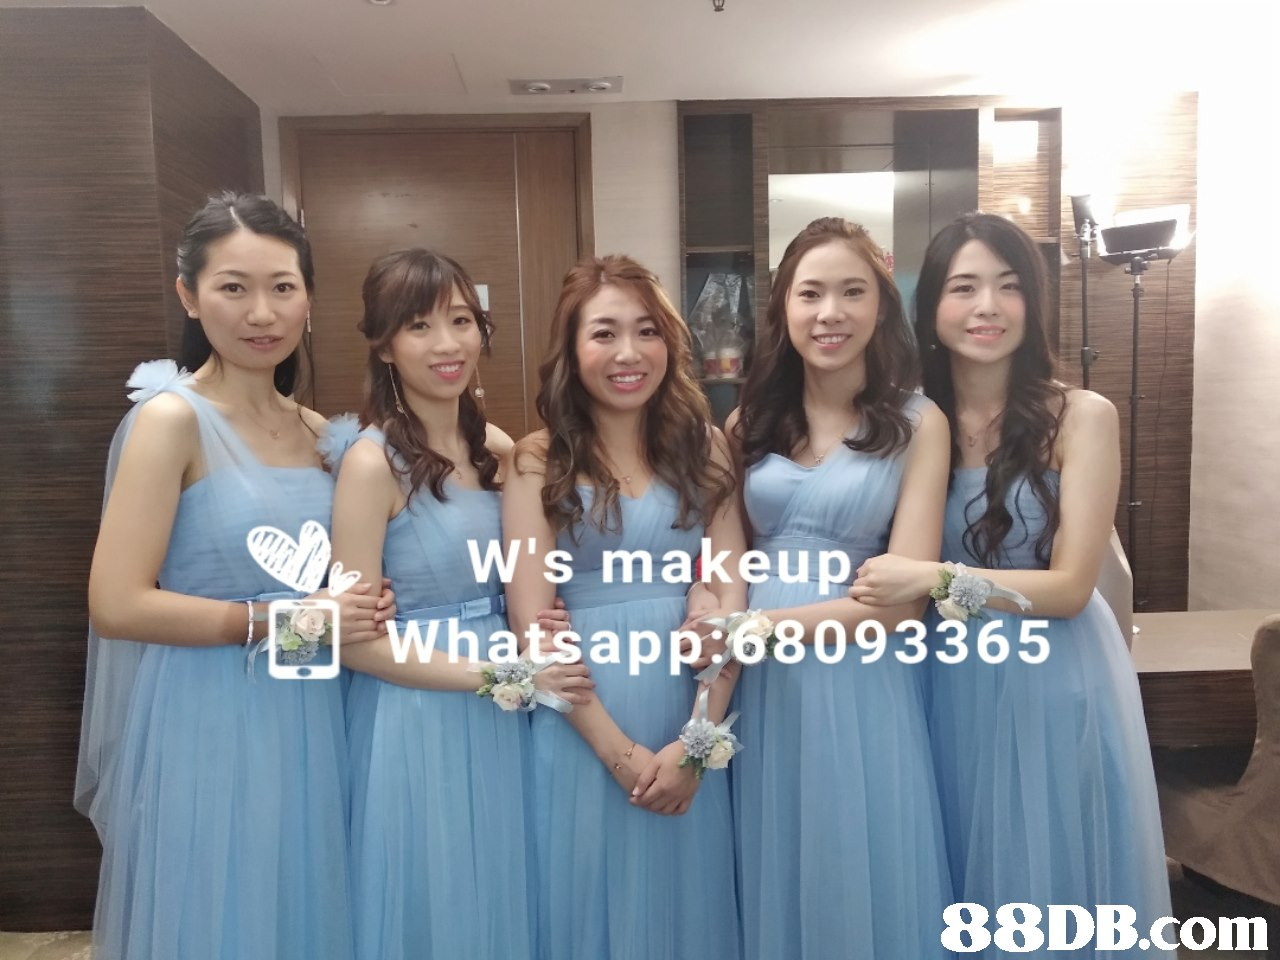 W's makeup Whatsapp:68093365   Dress,Shoulder,Bridesmaid,Event,Joint